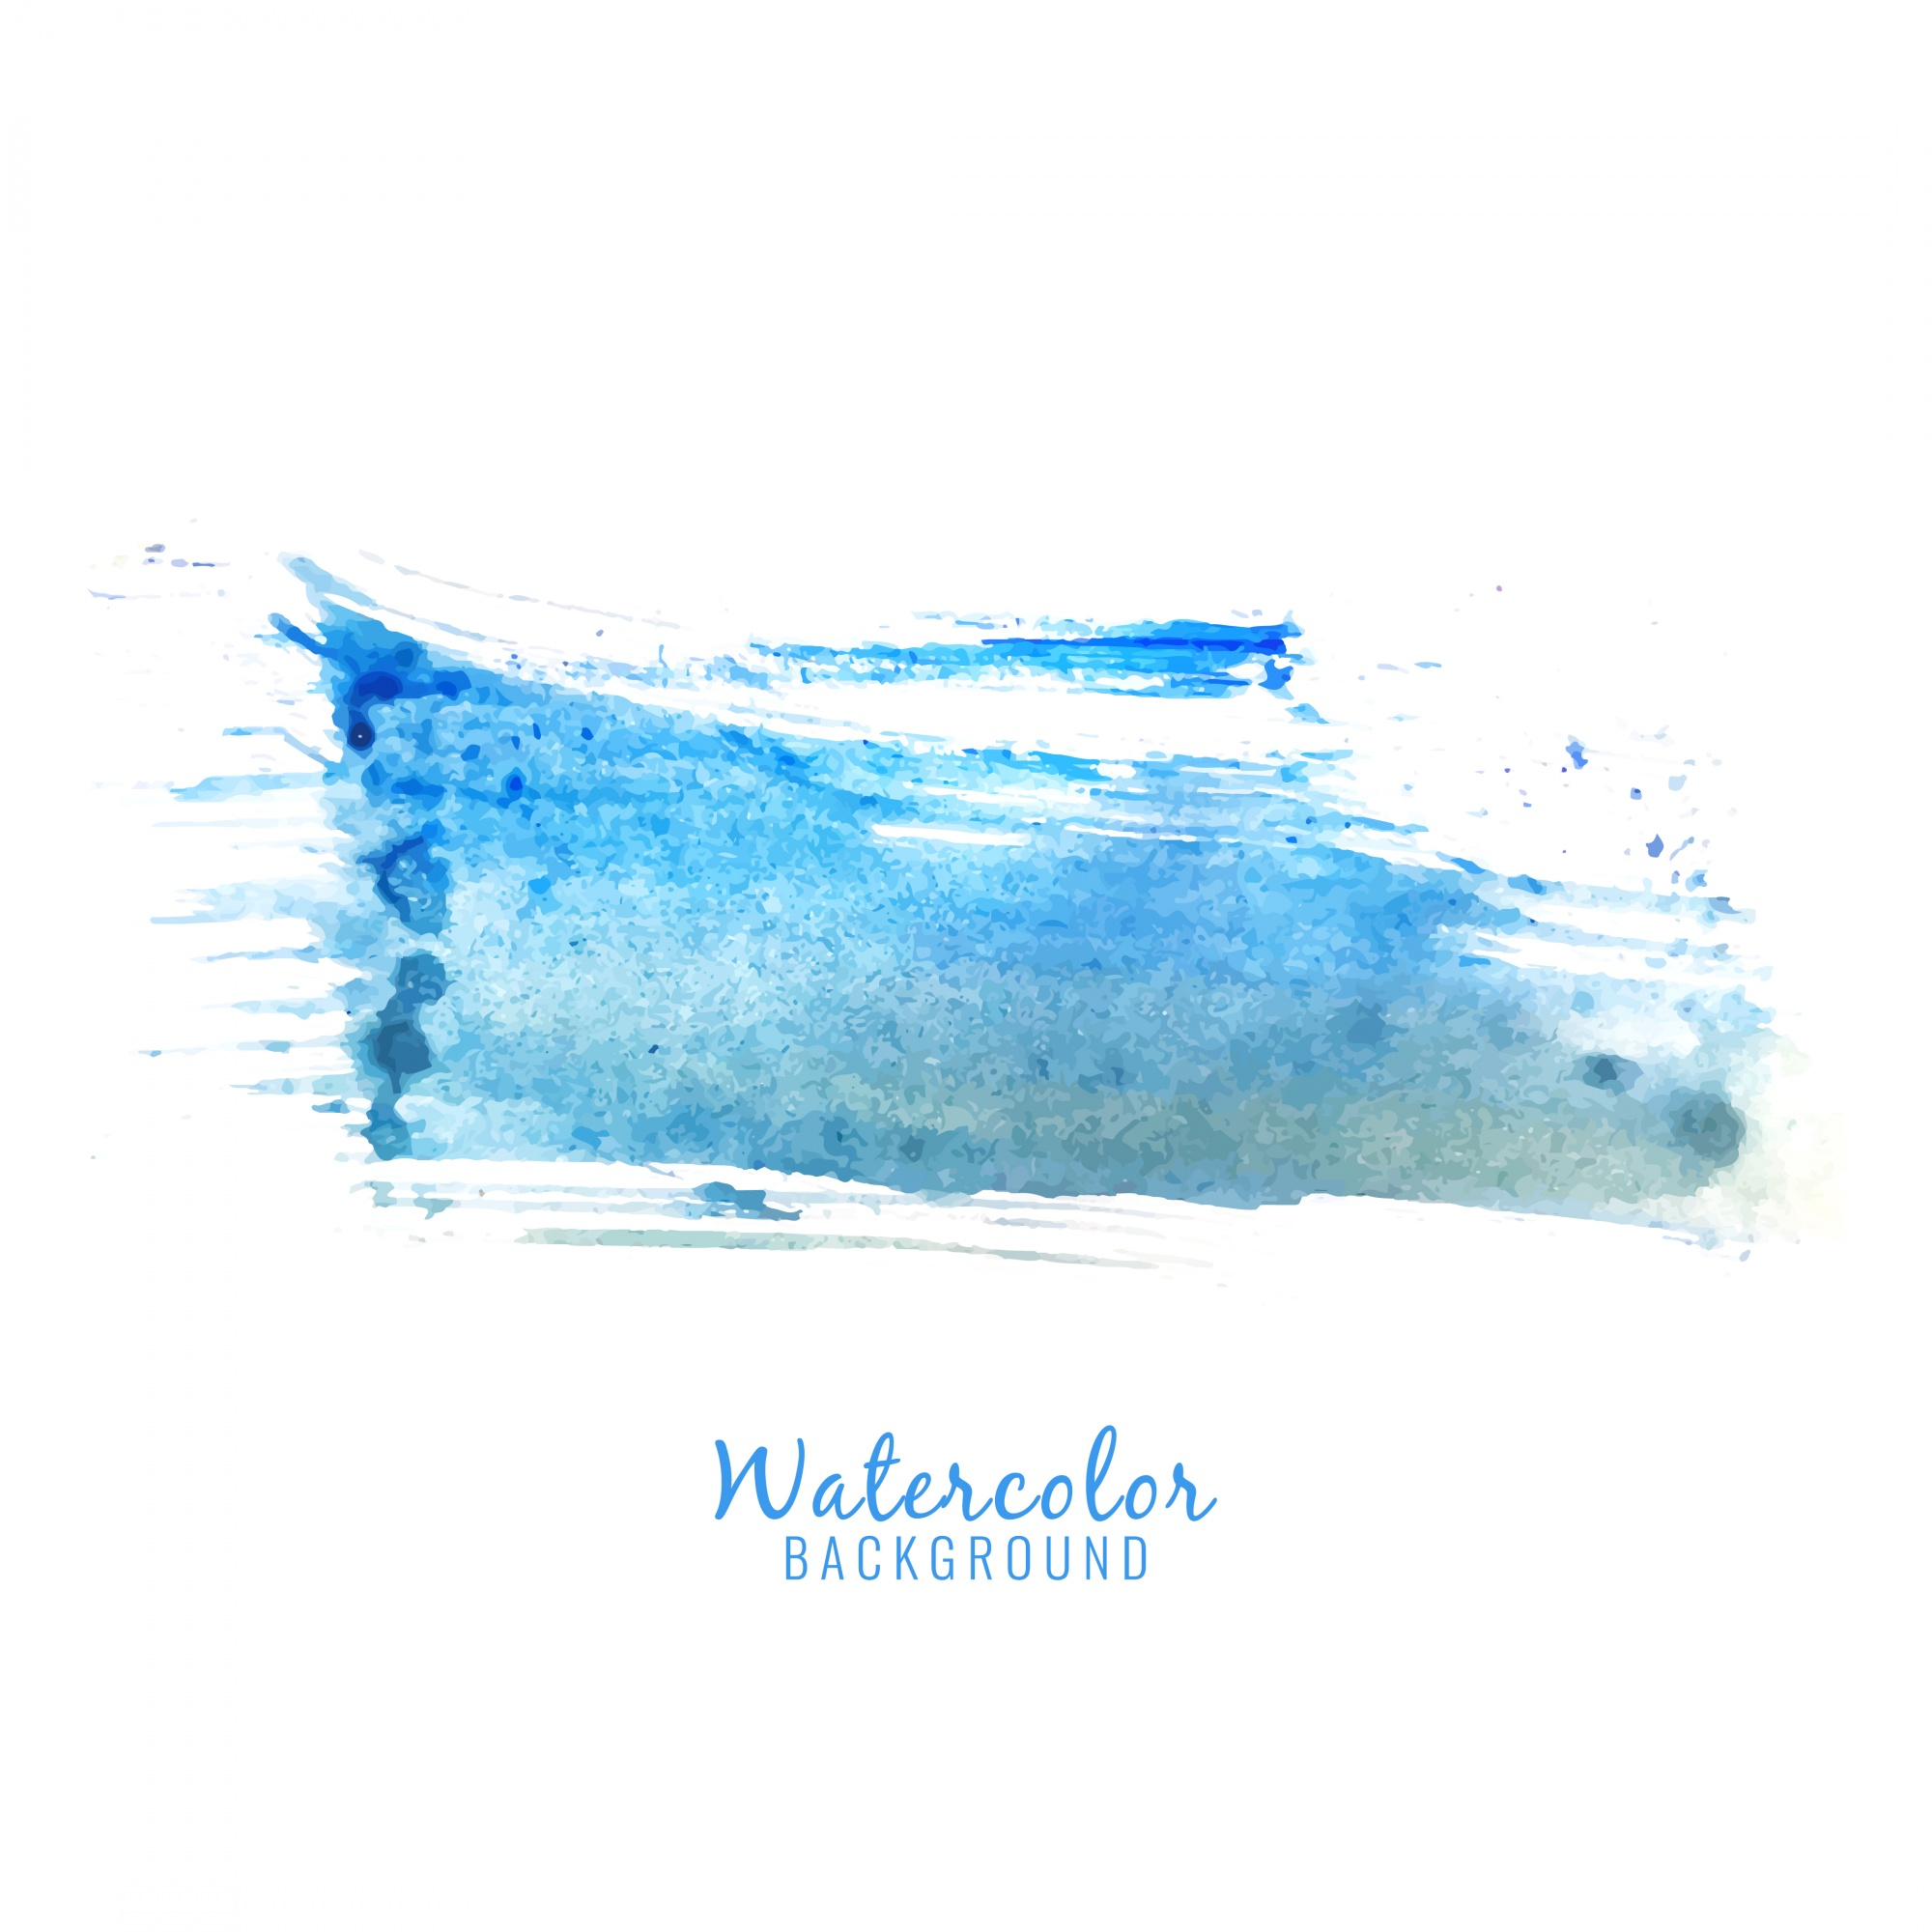 Abstract blue watercolor splash design background